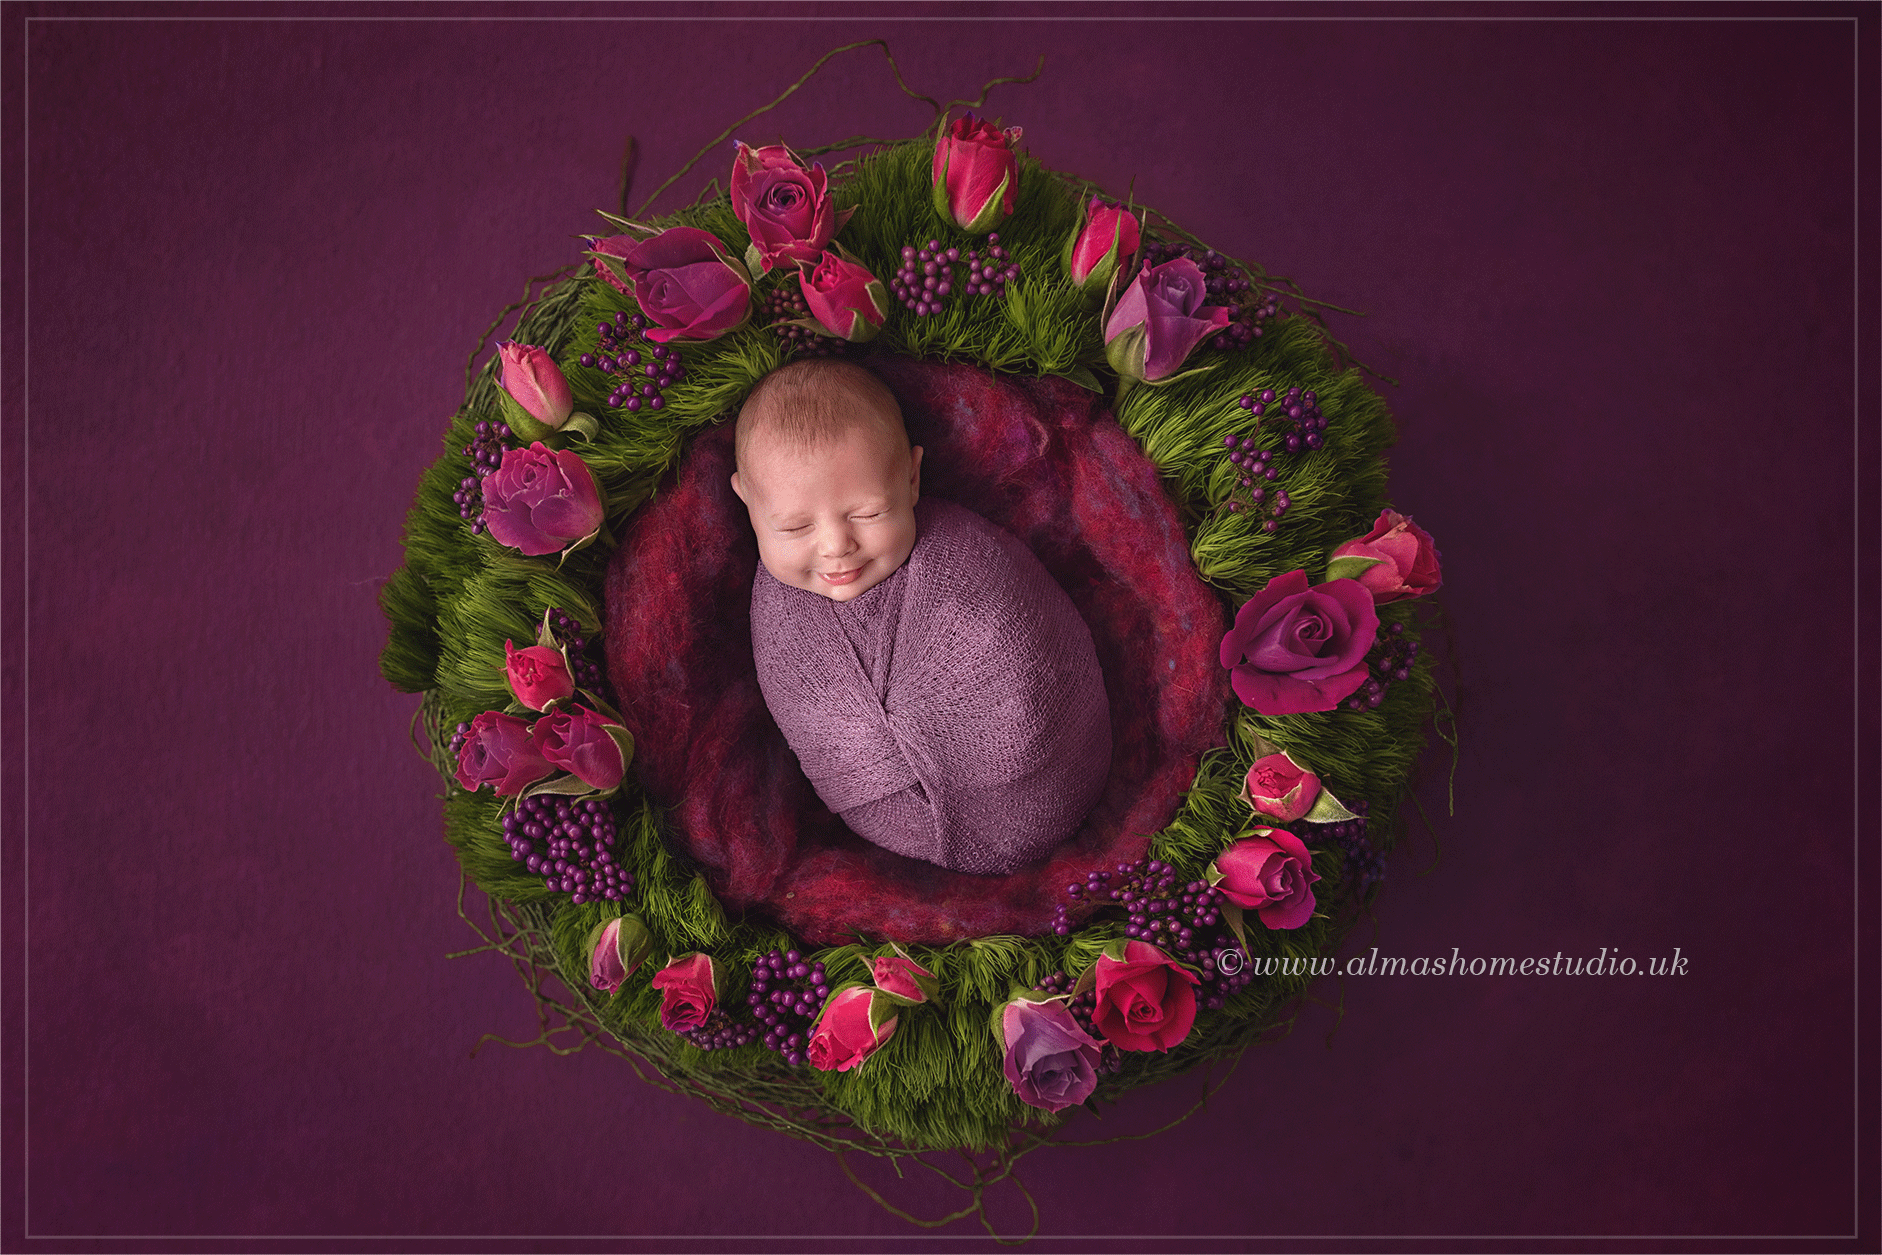 Almas Home Studio Newborn photographer based in Blandford Forum, Dorset